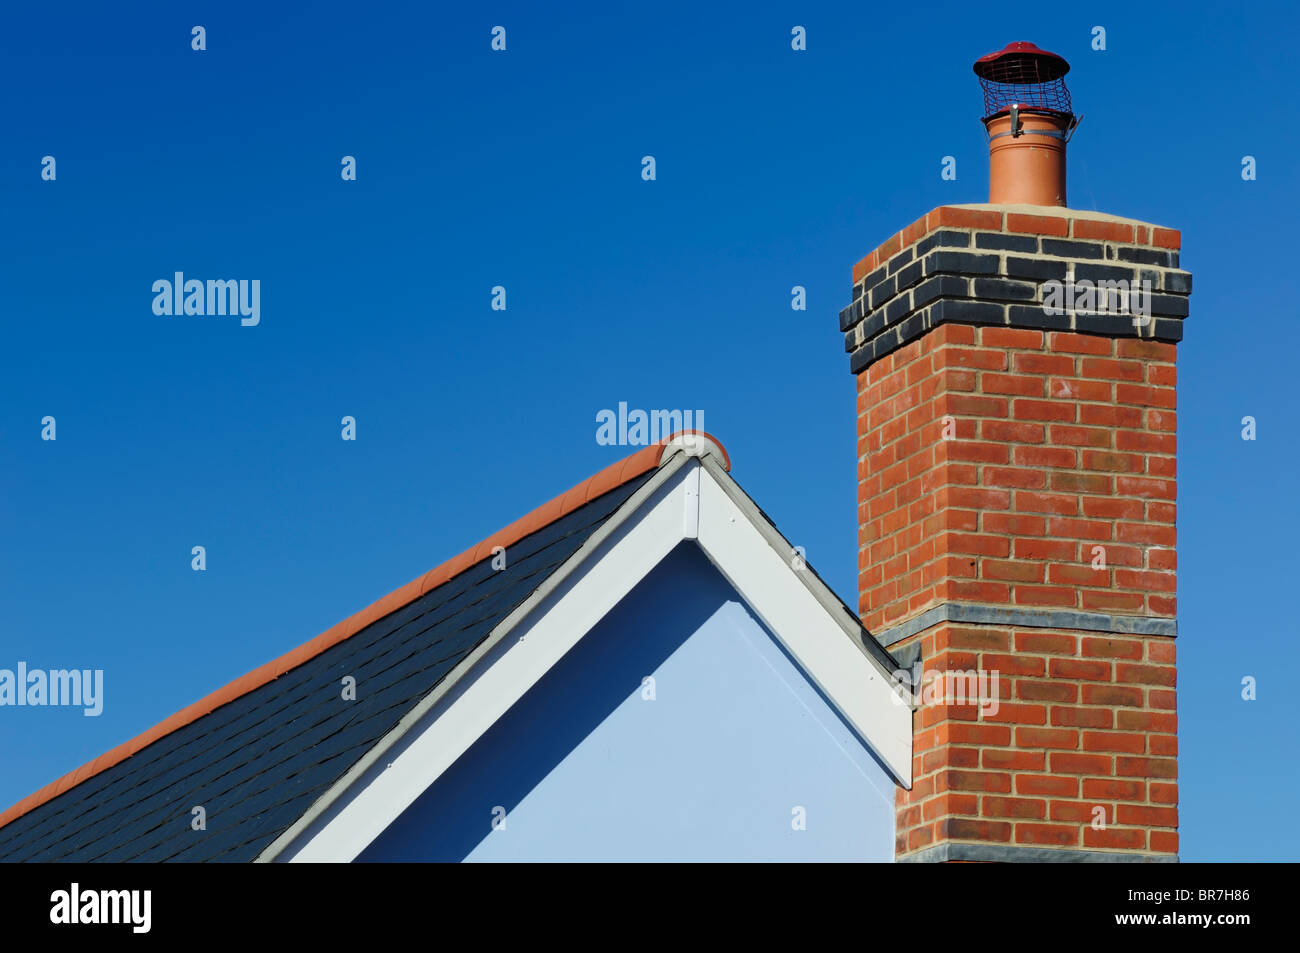 A close up view of a brick chimney on a house, beneath a clear blue sky. - Stock Image